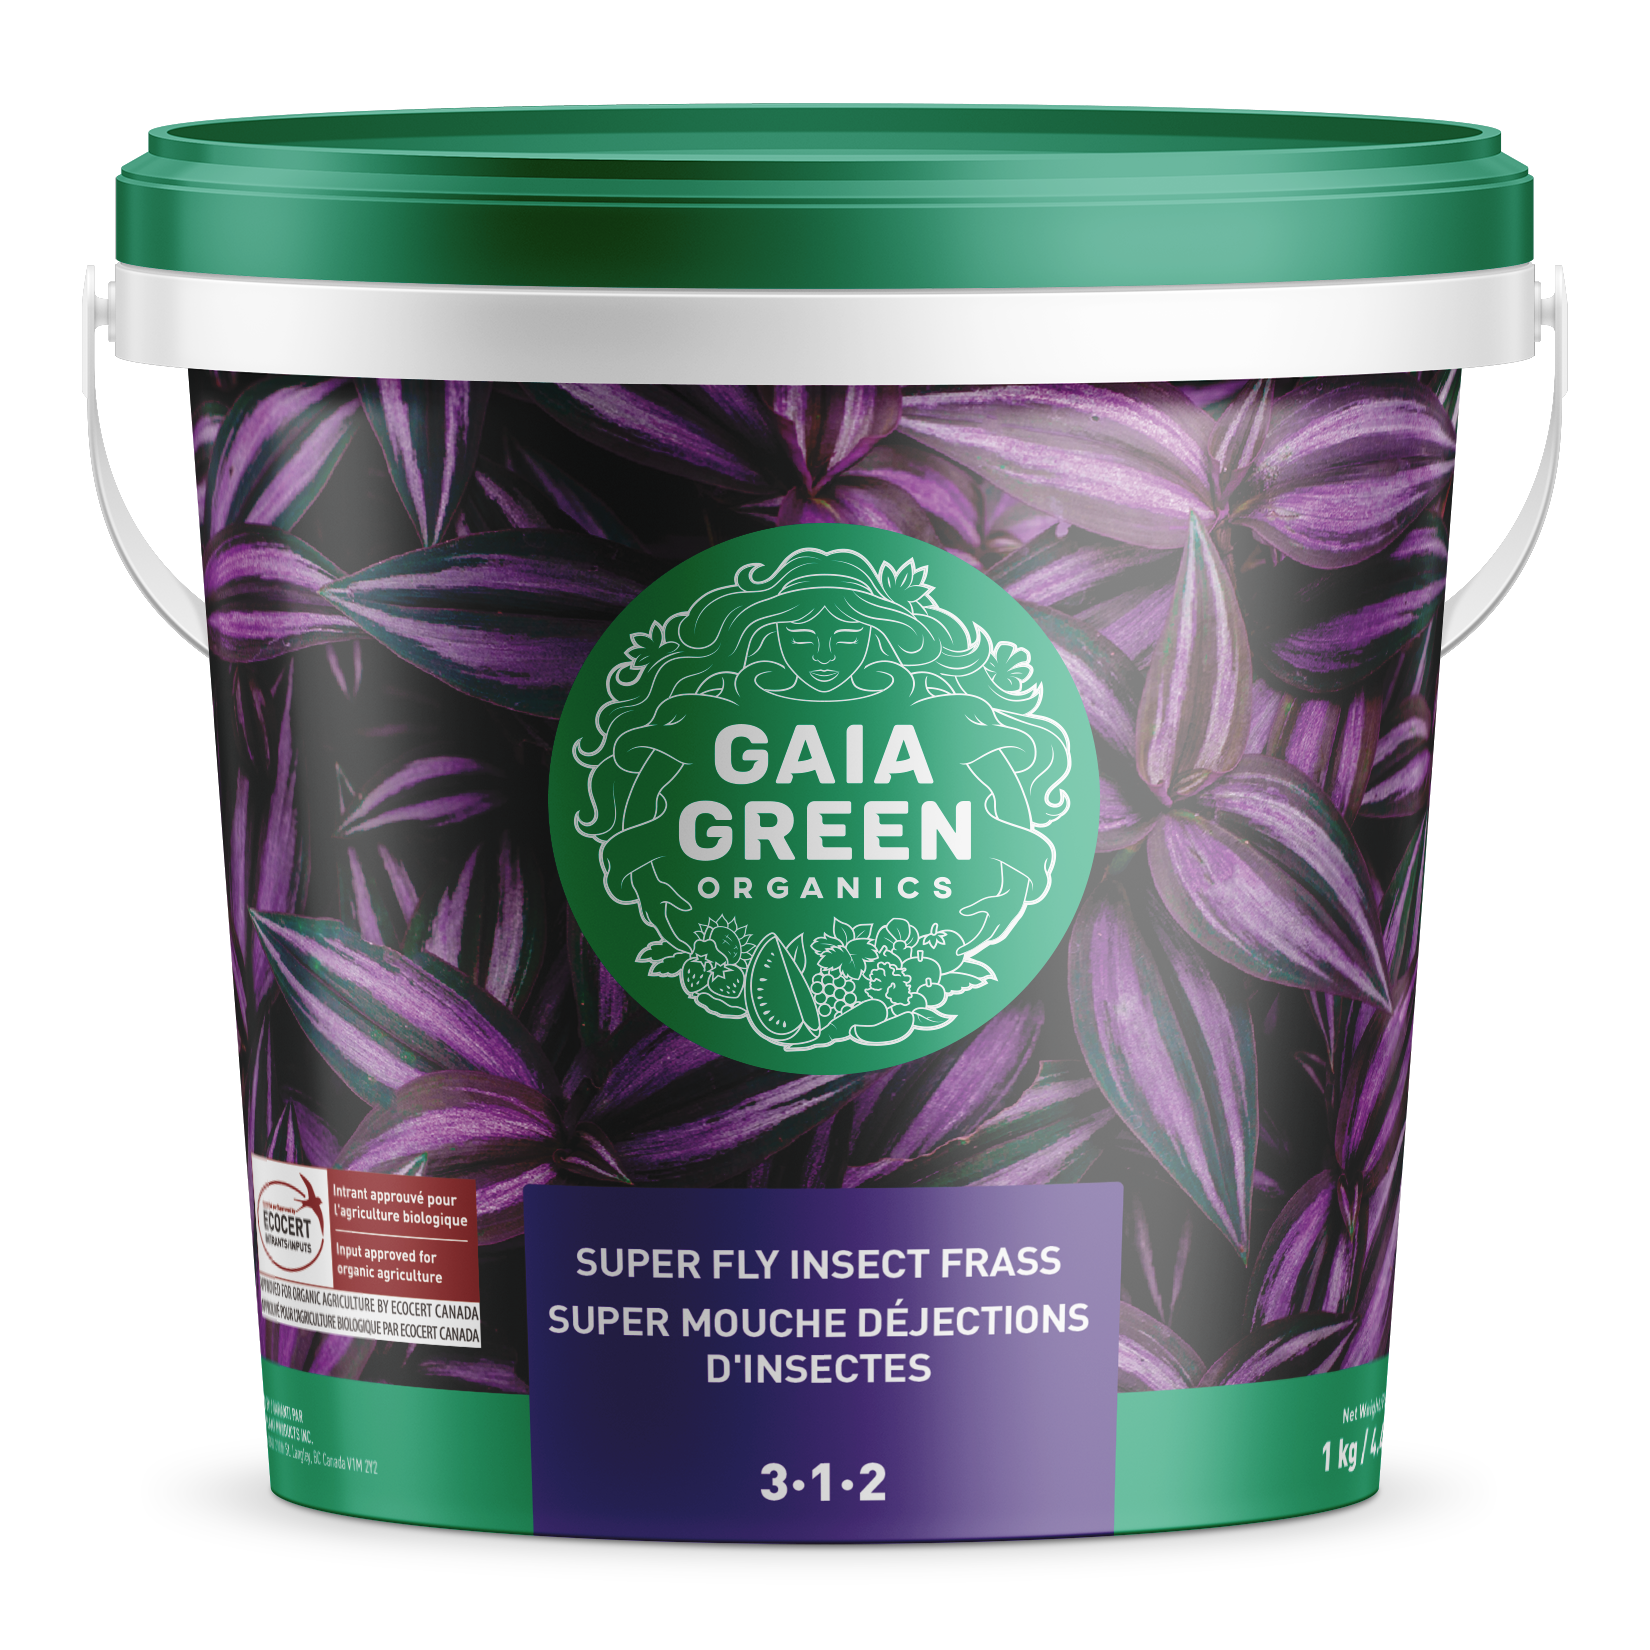 Gaia Green Super Fly Insect Frass 1Kg